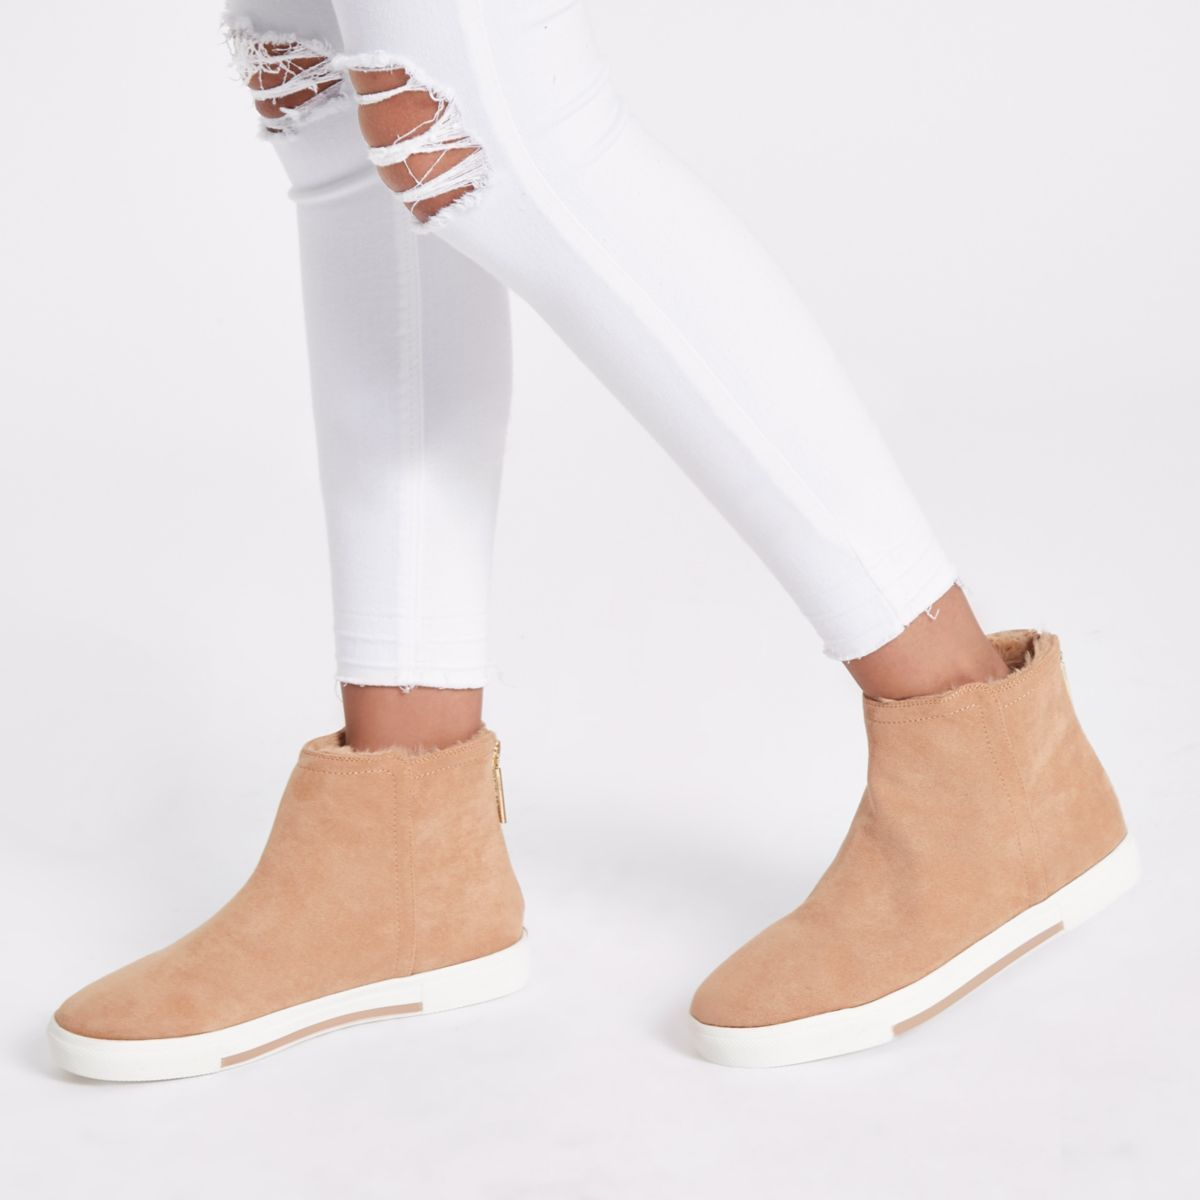 2c23989222a Beige wide fit faux fur lined boots